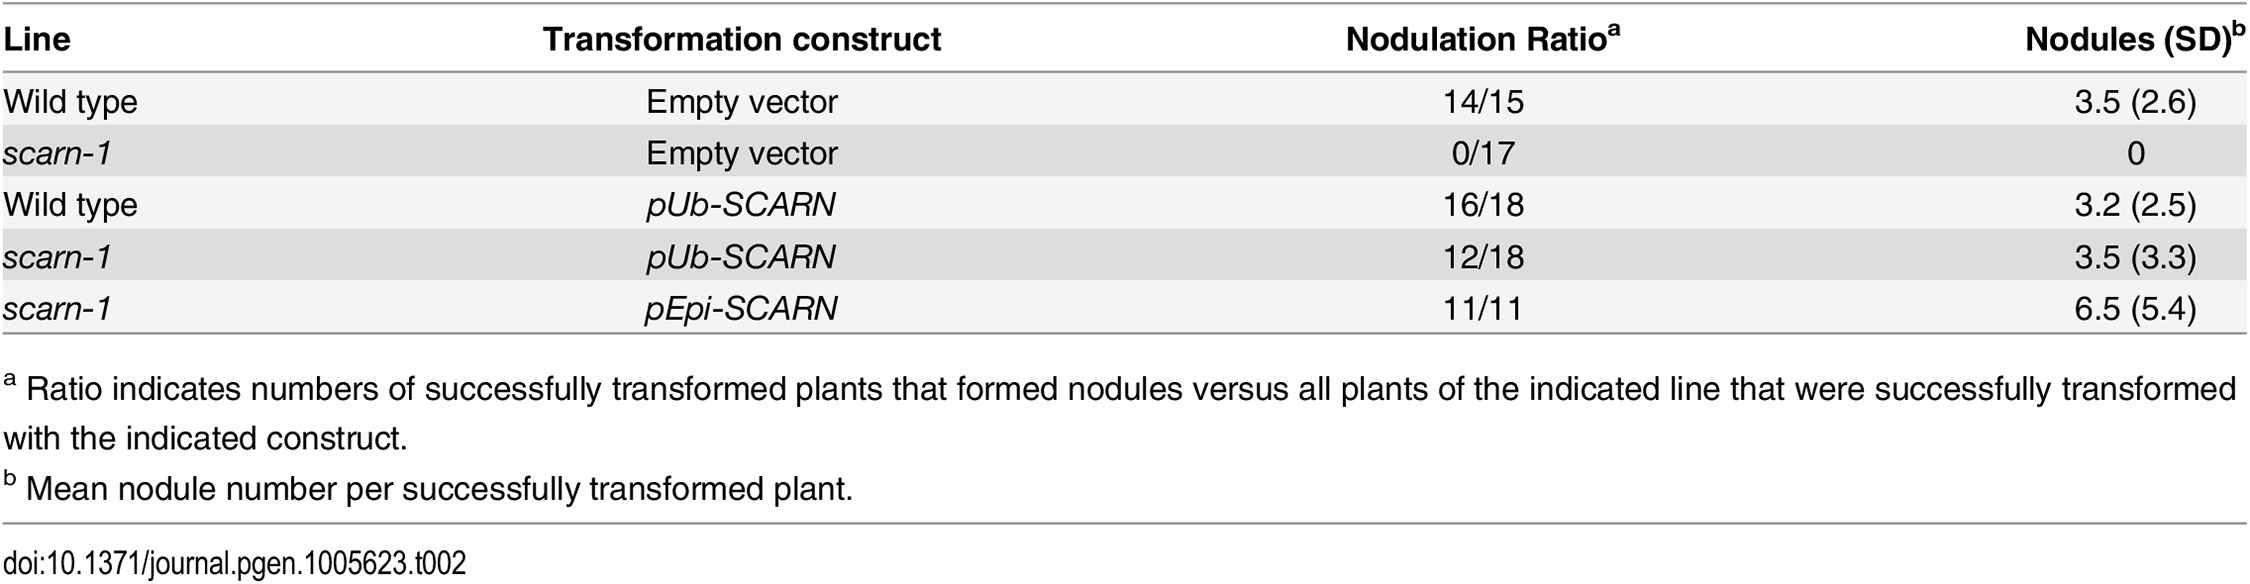 Complementation of <i>scarn-1</i> nodulation phenotype by hairy root transformation.